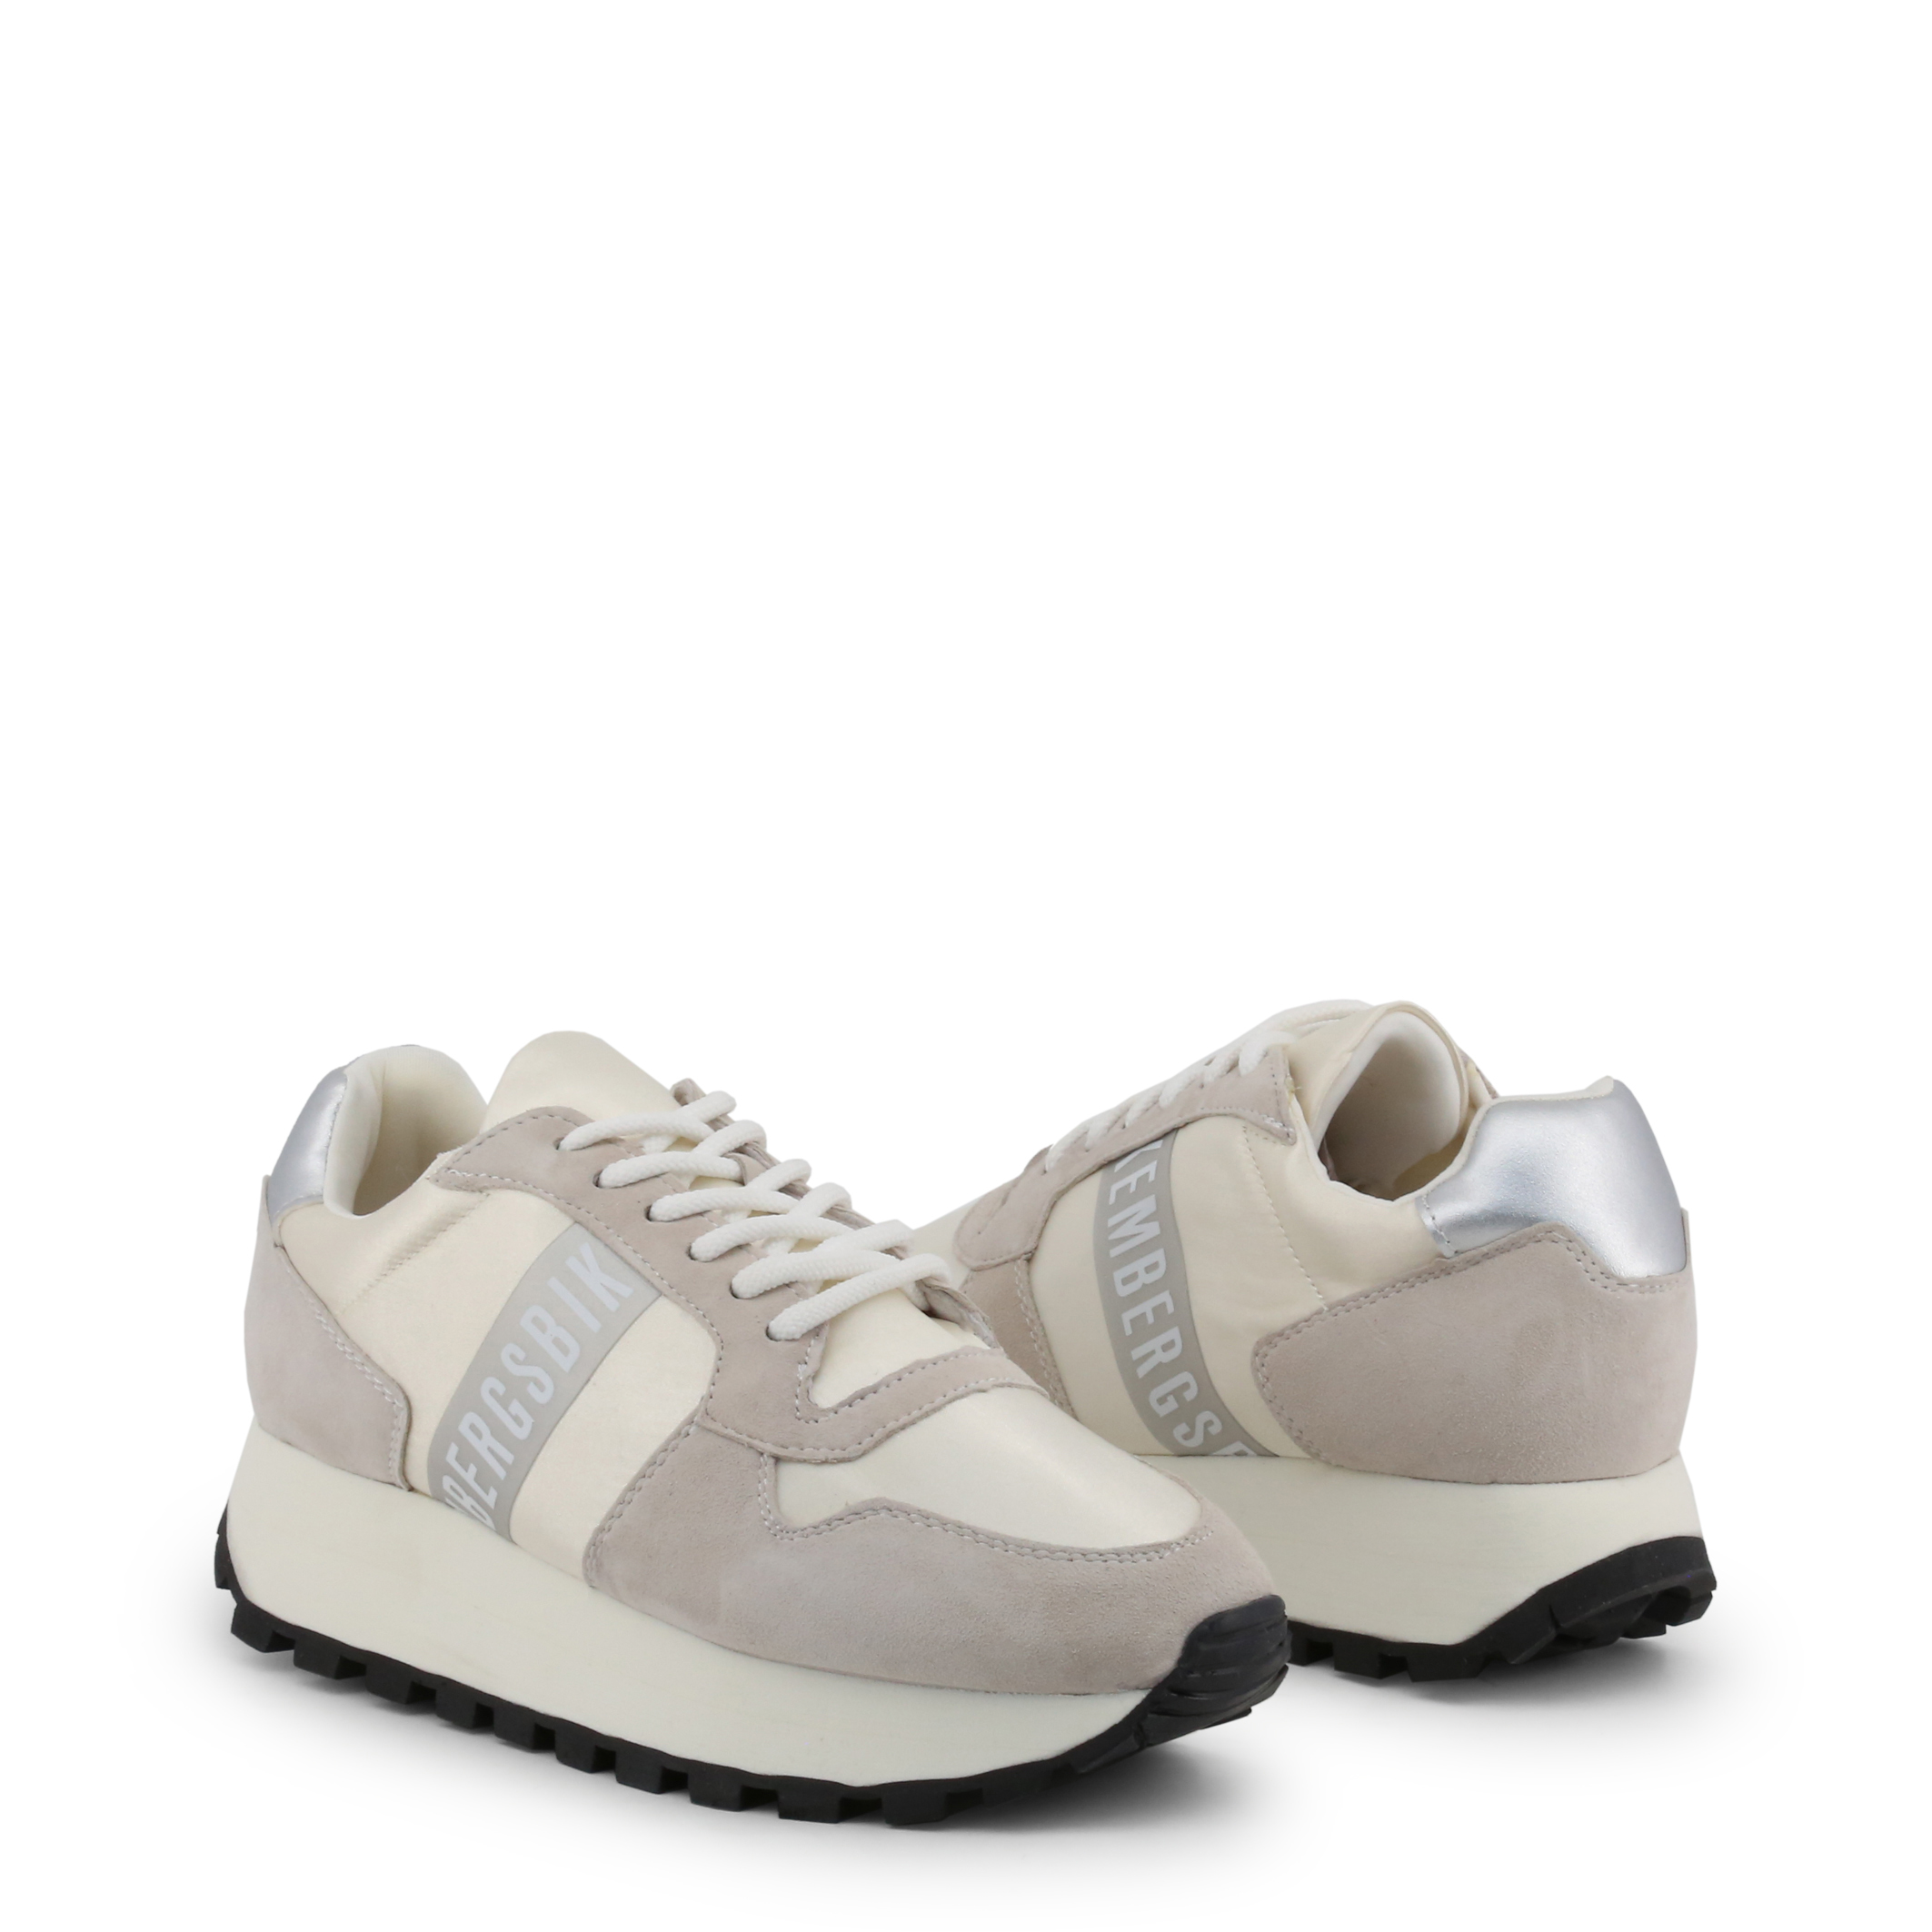 Baskets / Sneakers  Bikkembergs FEND-ER_2087 white